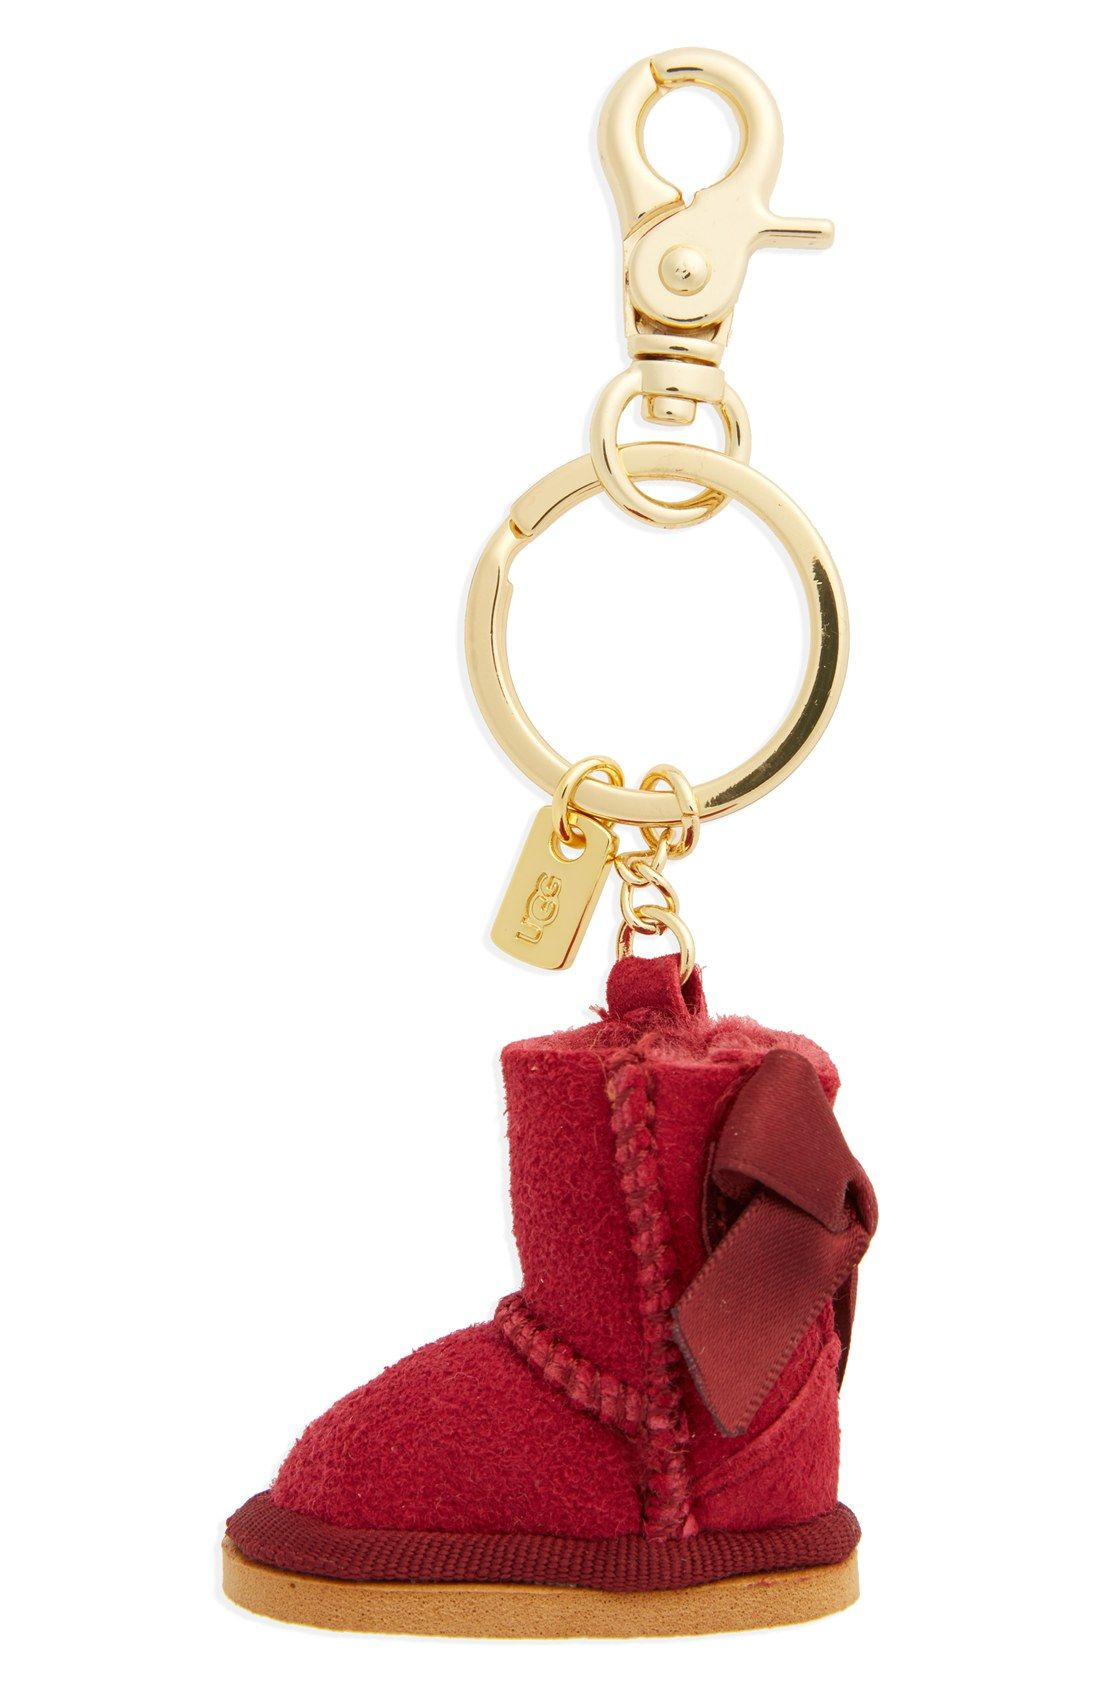 this adorable ugg keychain will be the perfect stocking stuffer rh pinterest com